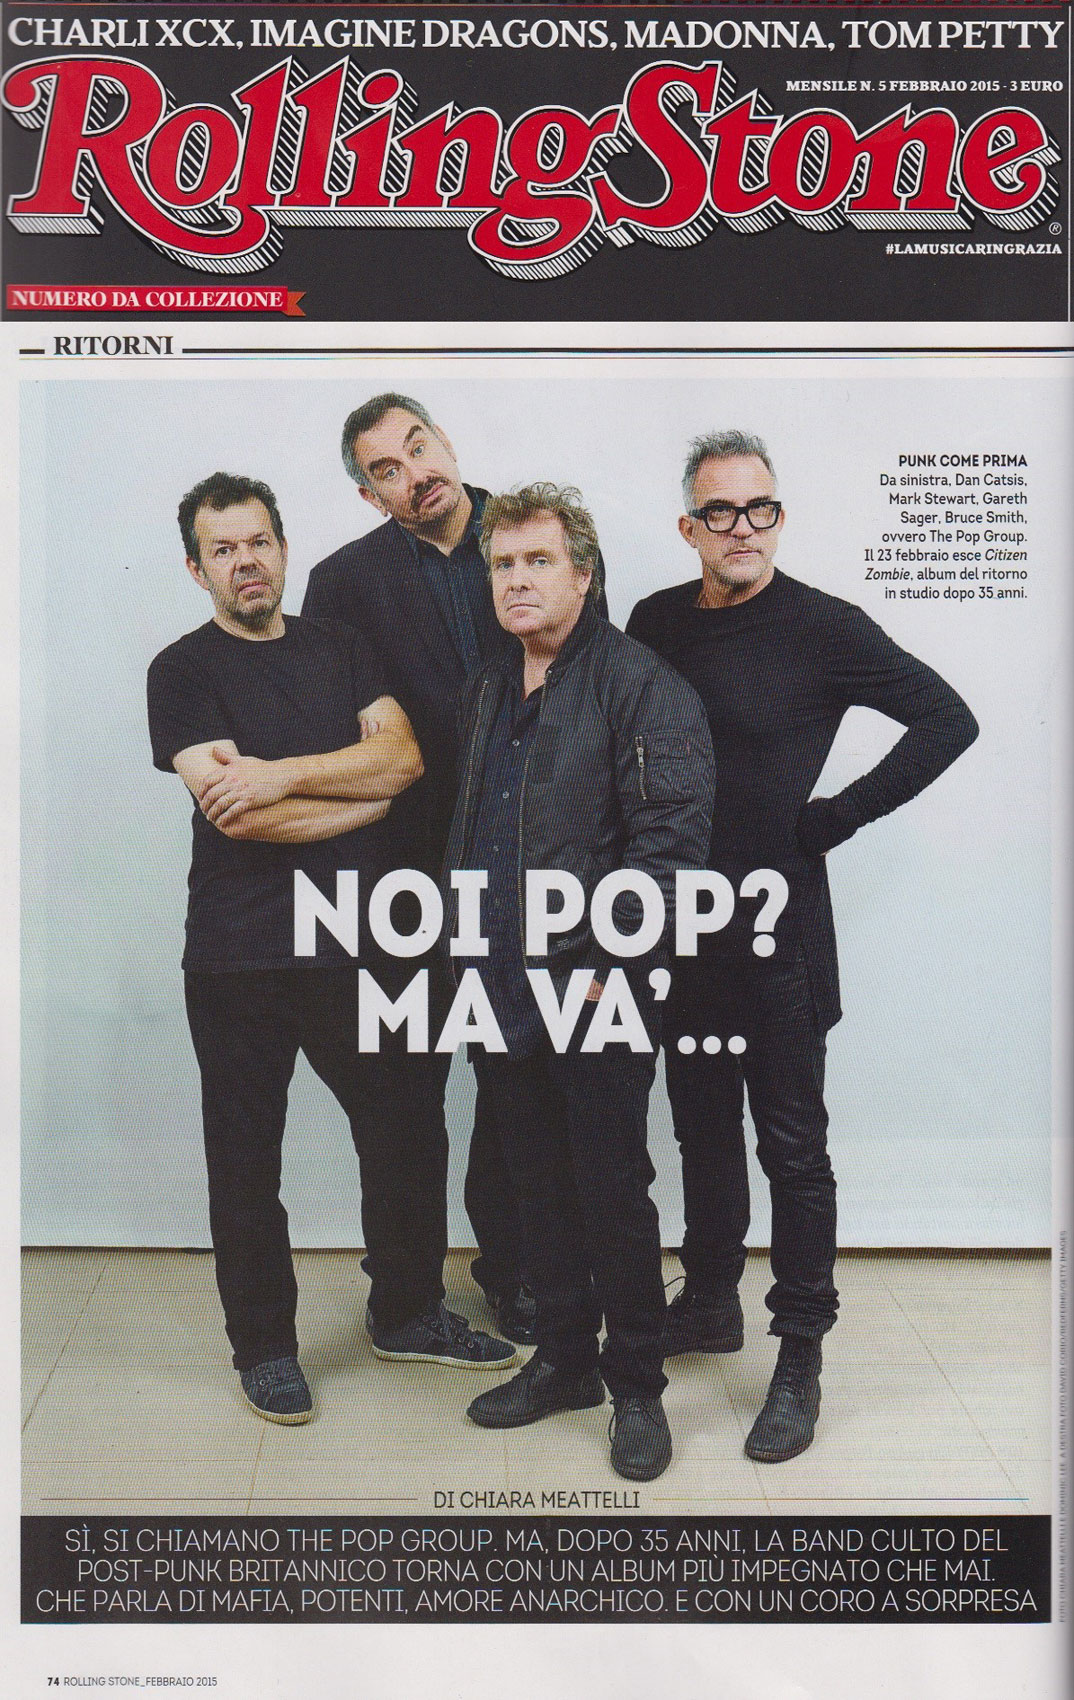 The Pop Group: photo & interview